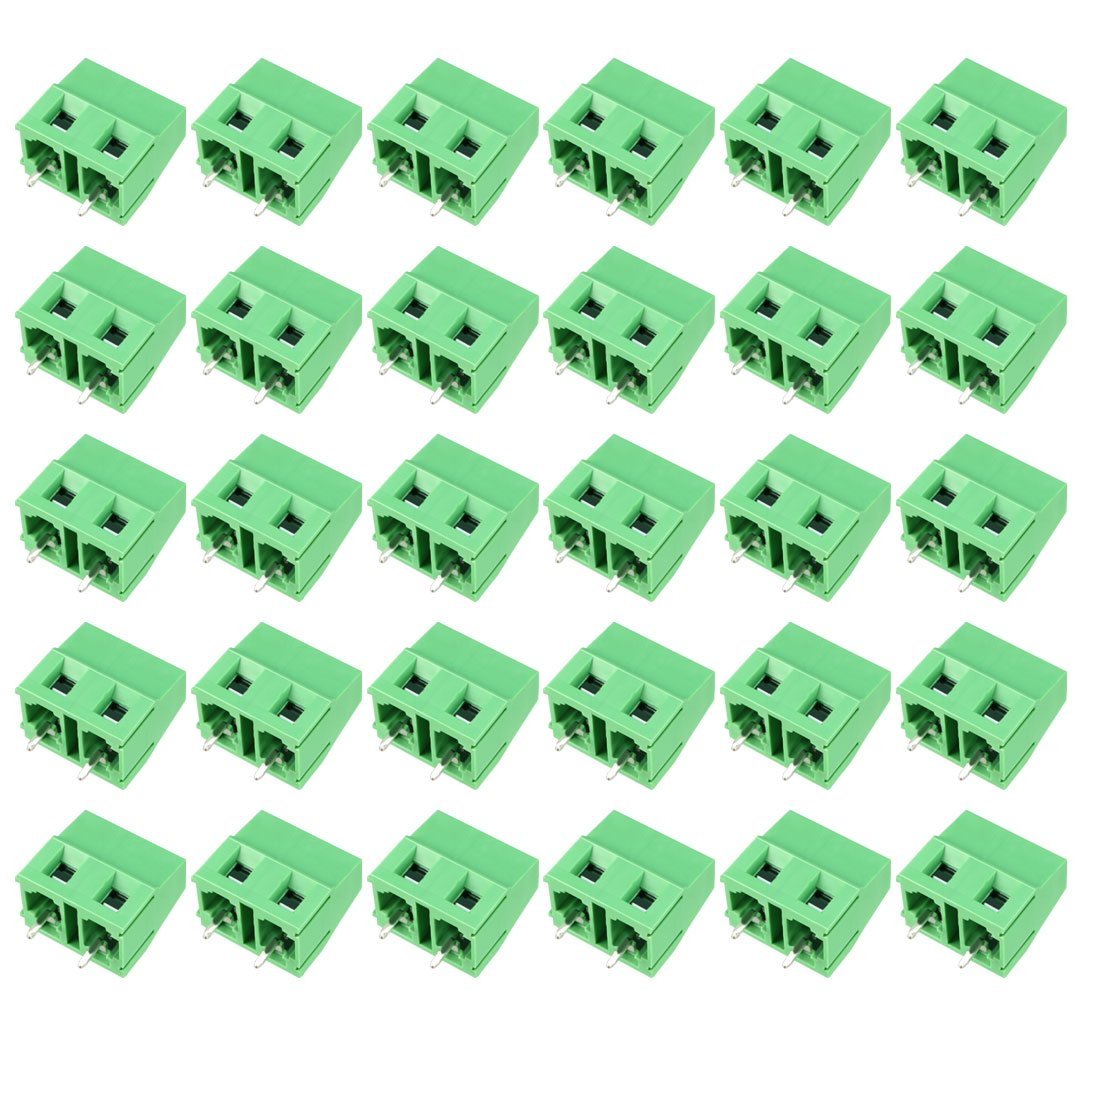 uxcell 20Pcs AC300V 10A 7.5mm Pitch 2P Flat Angle Needle Seat Insert-in PCB Terminal Block Connector Blue